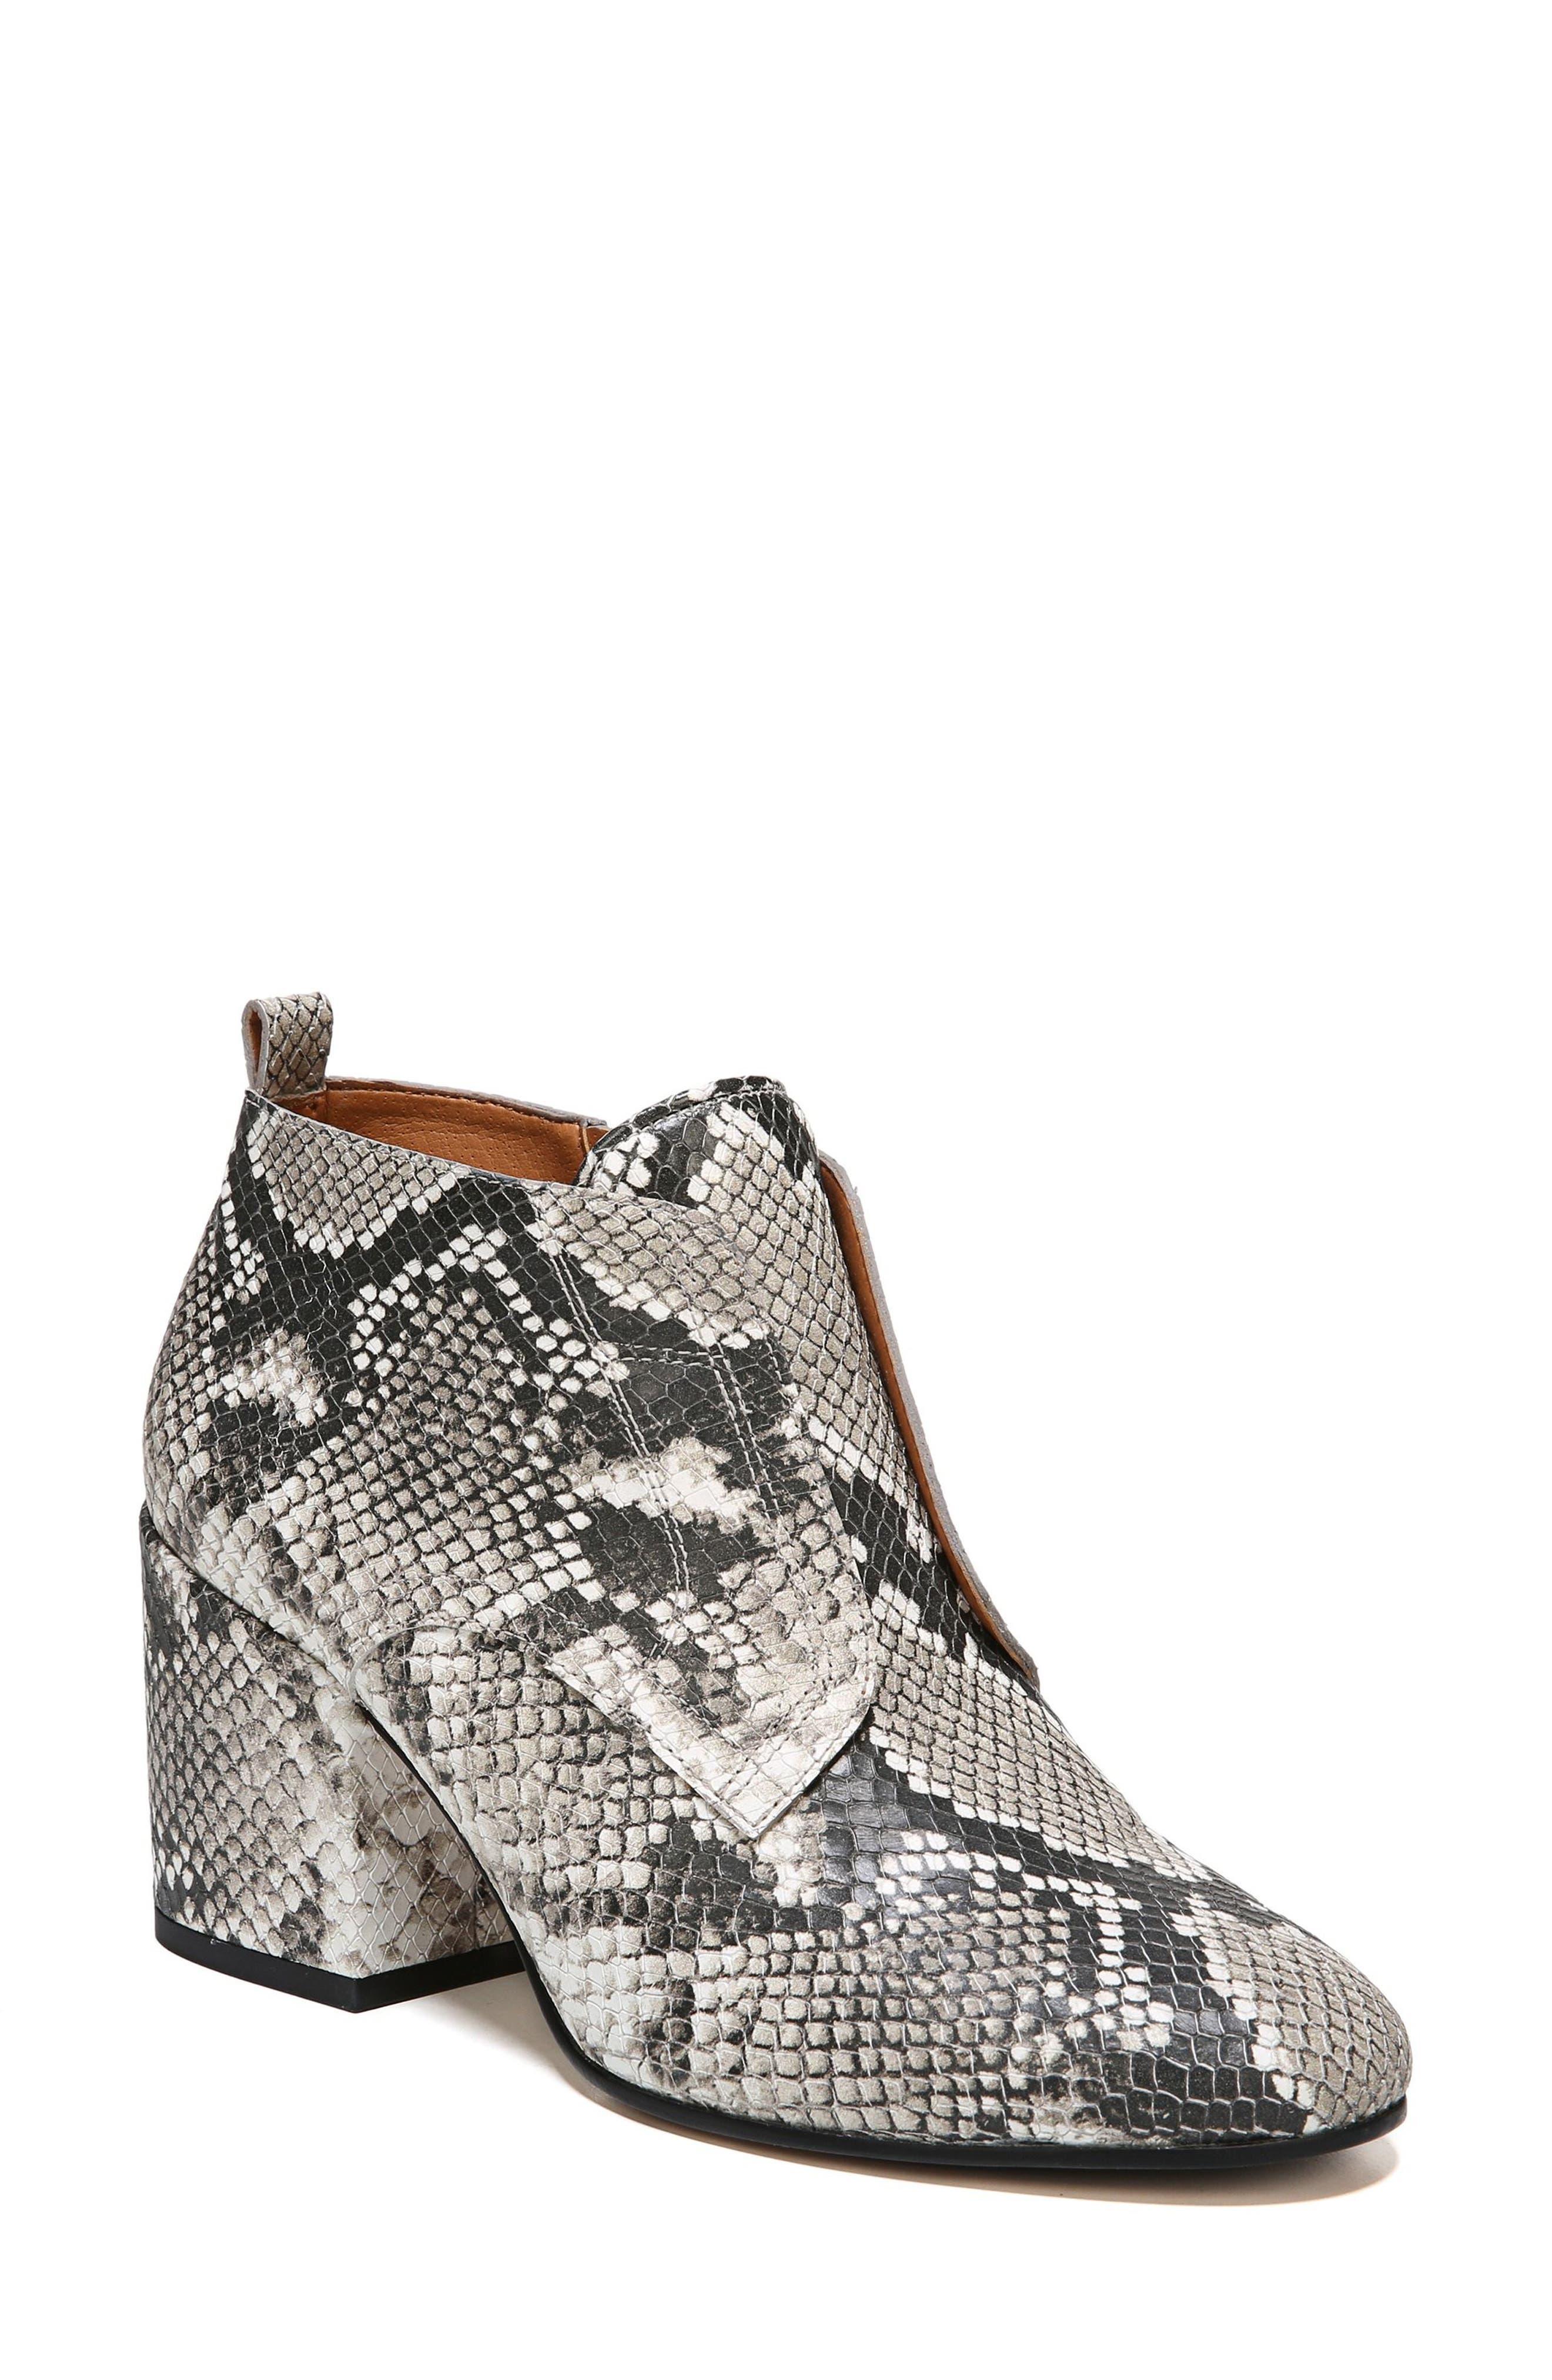 Alfie Bootie,                         Main,                         color, Natural Snake Leather